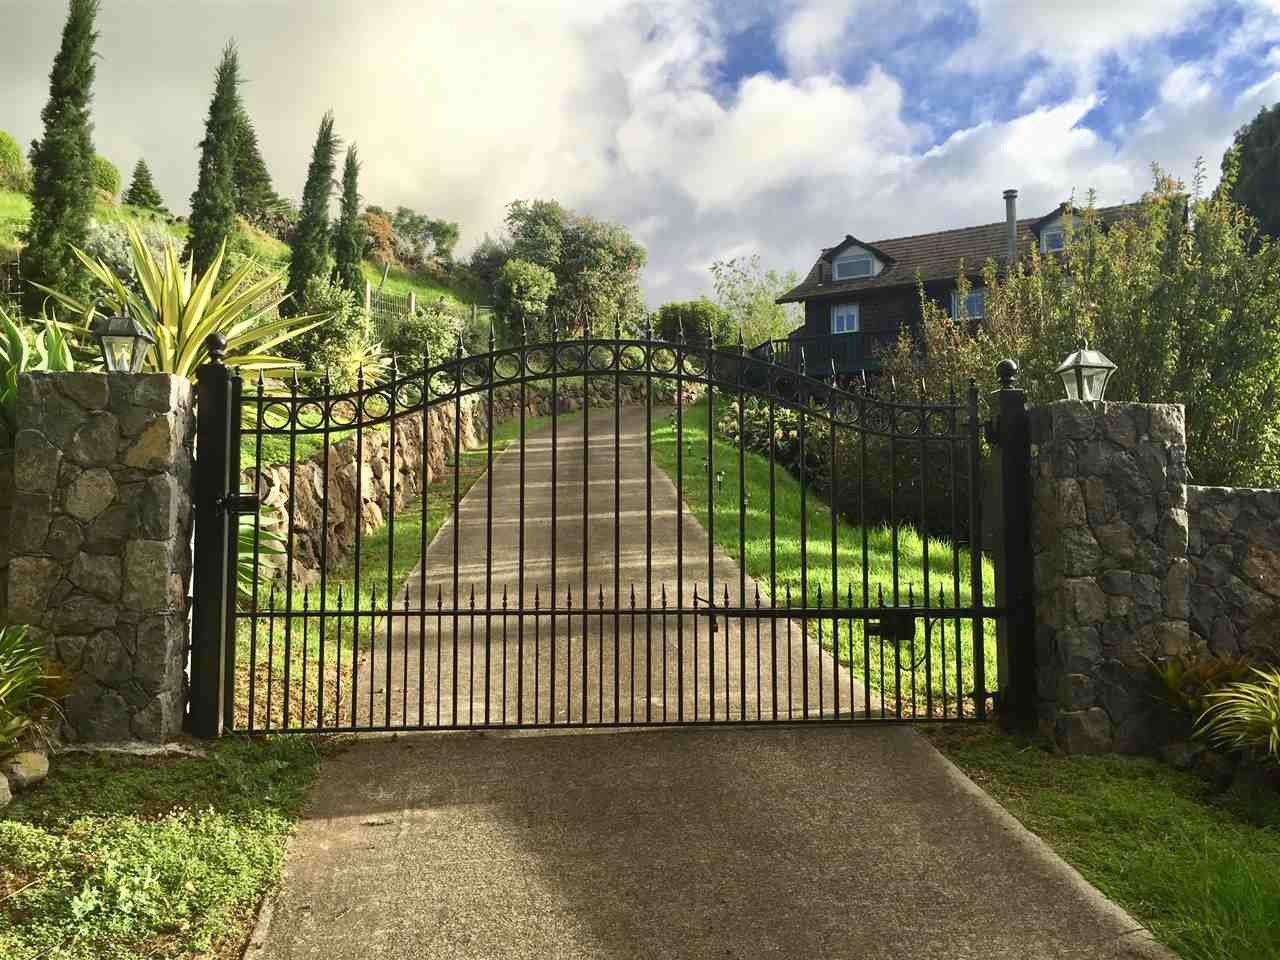 890 upper kimo dr a luxury other for sale in kula, hawaii property id 385741 christie s international real estate